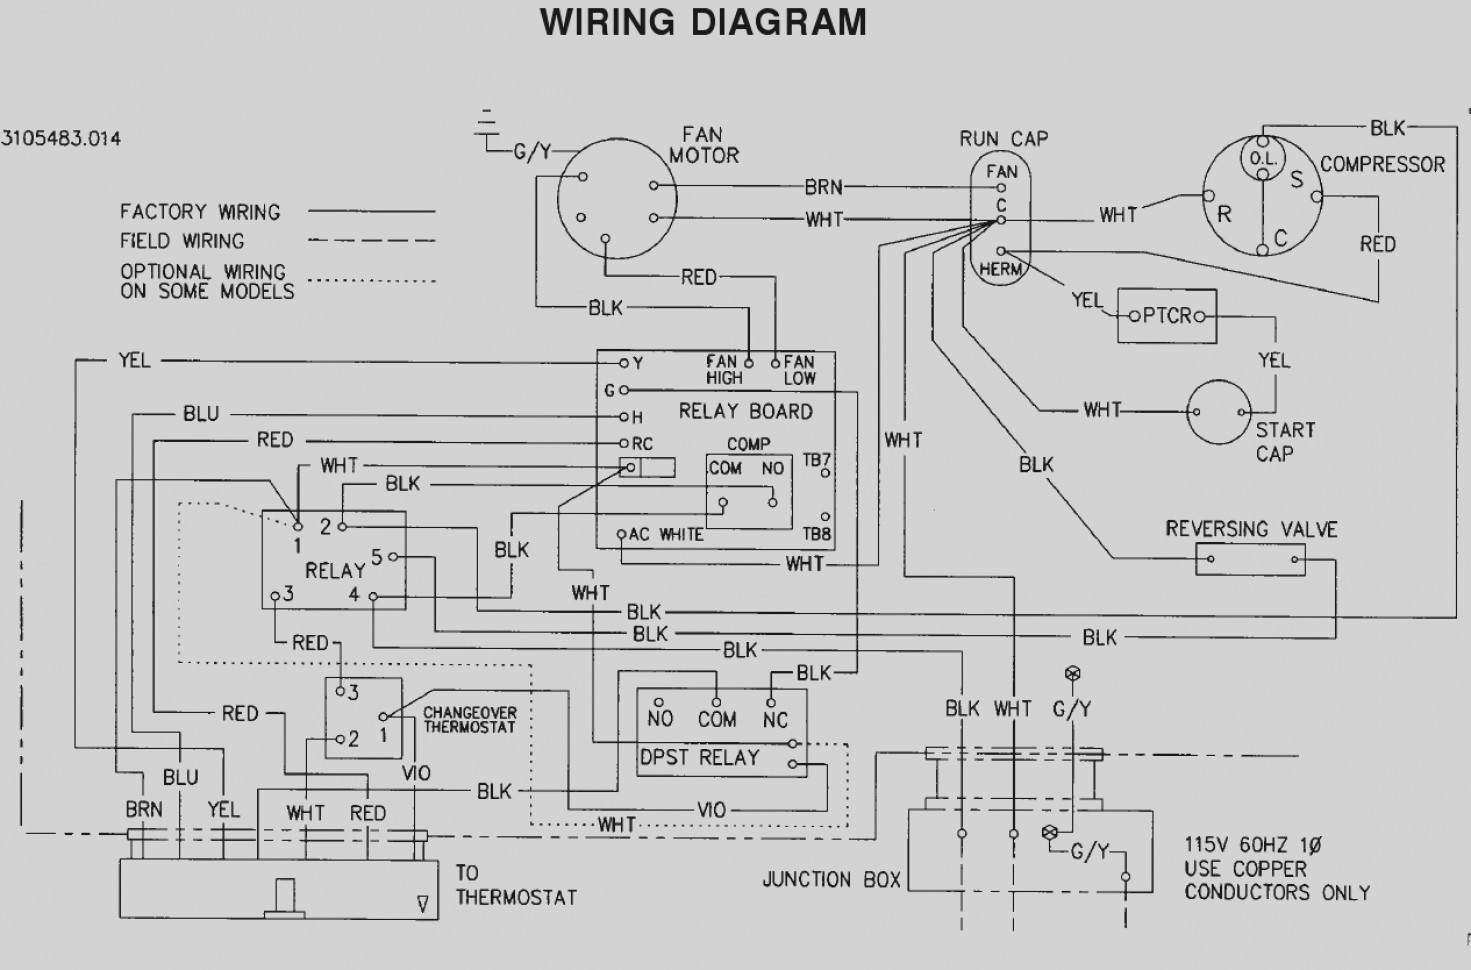 hight resolution of 1989 sea doo wiring diagram free images gallery